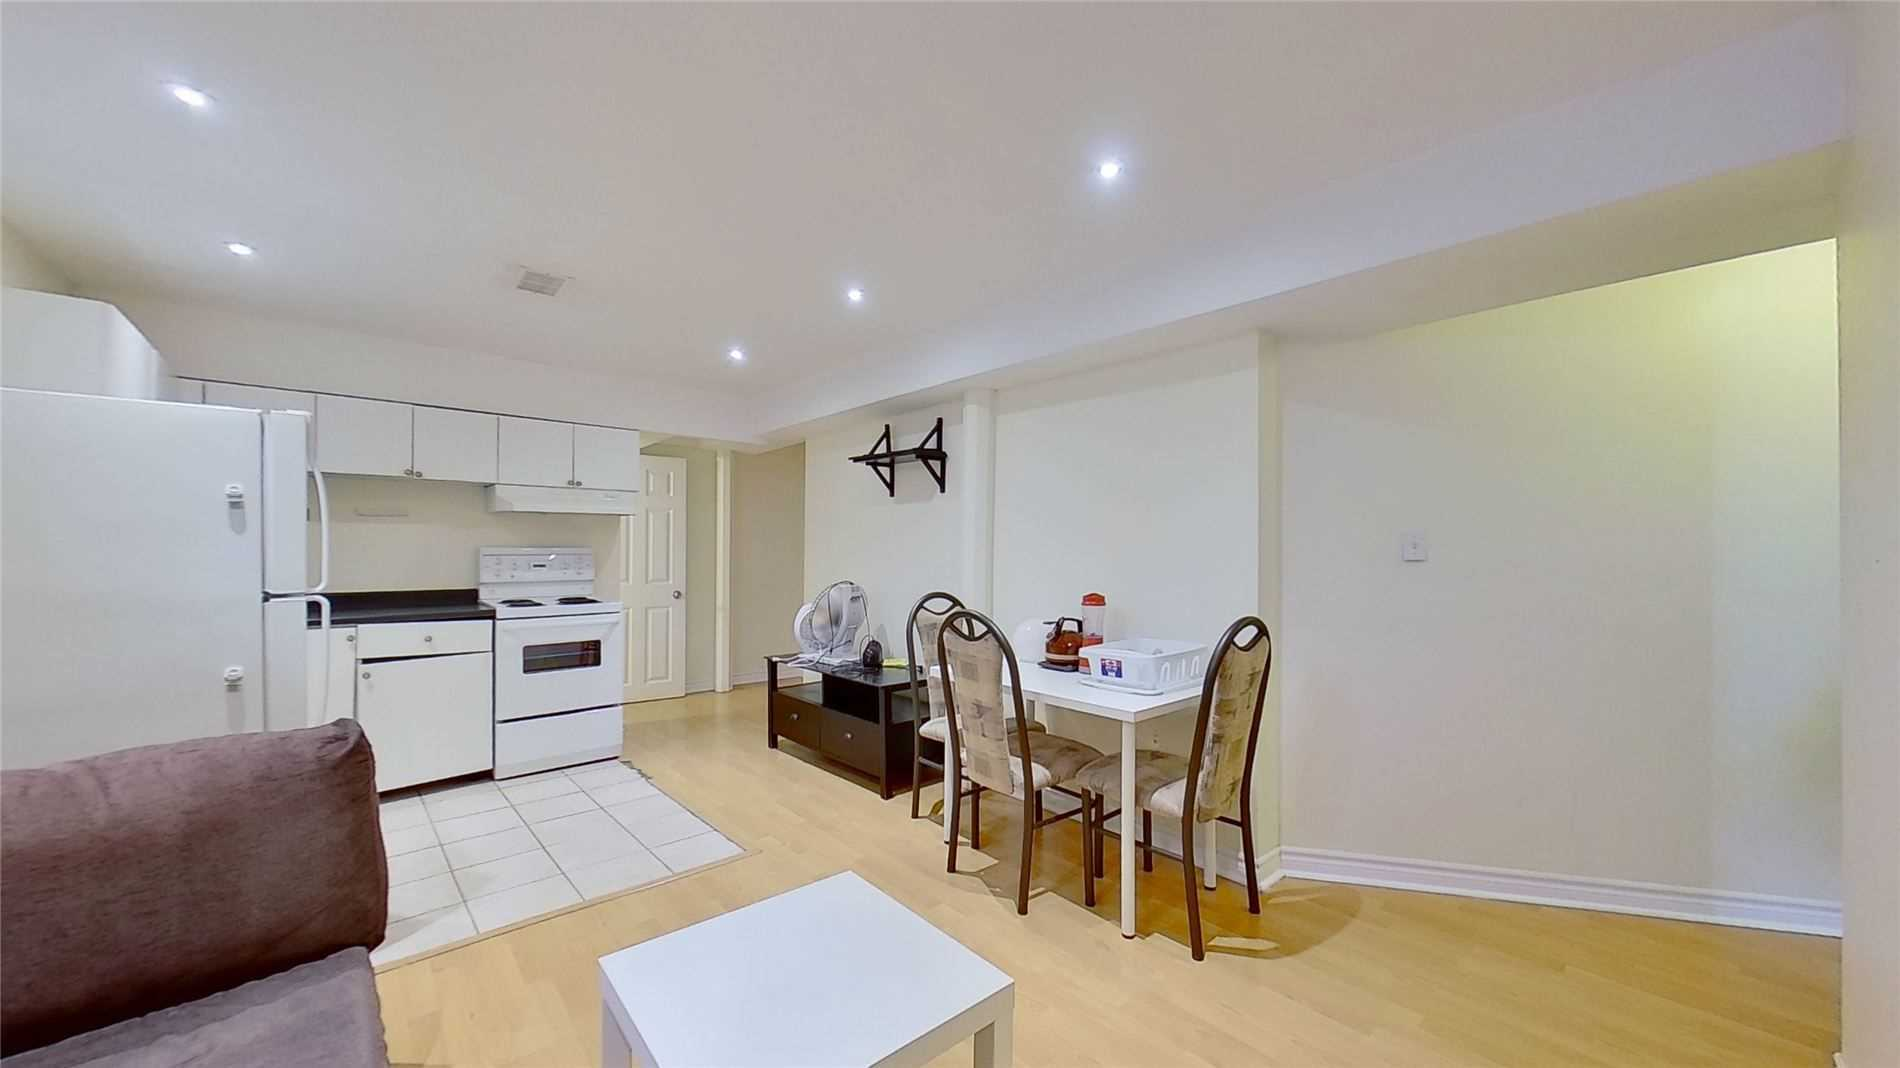 Image 12 of 16 showing inside of 2 Bedroom Detached 2-Storey for Lease at 5 Whalen Crt, Richmond Hill L4C9T5